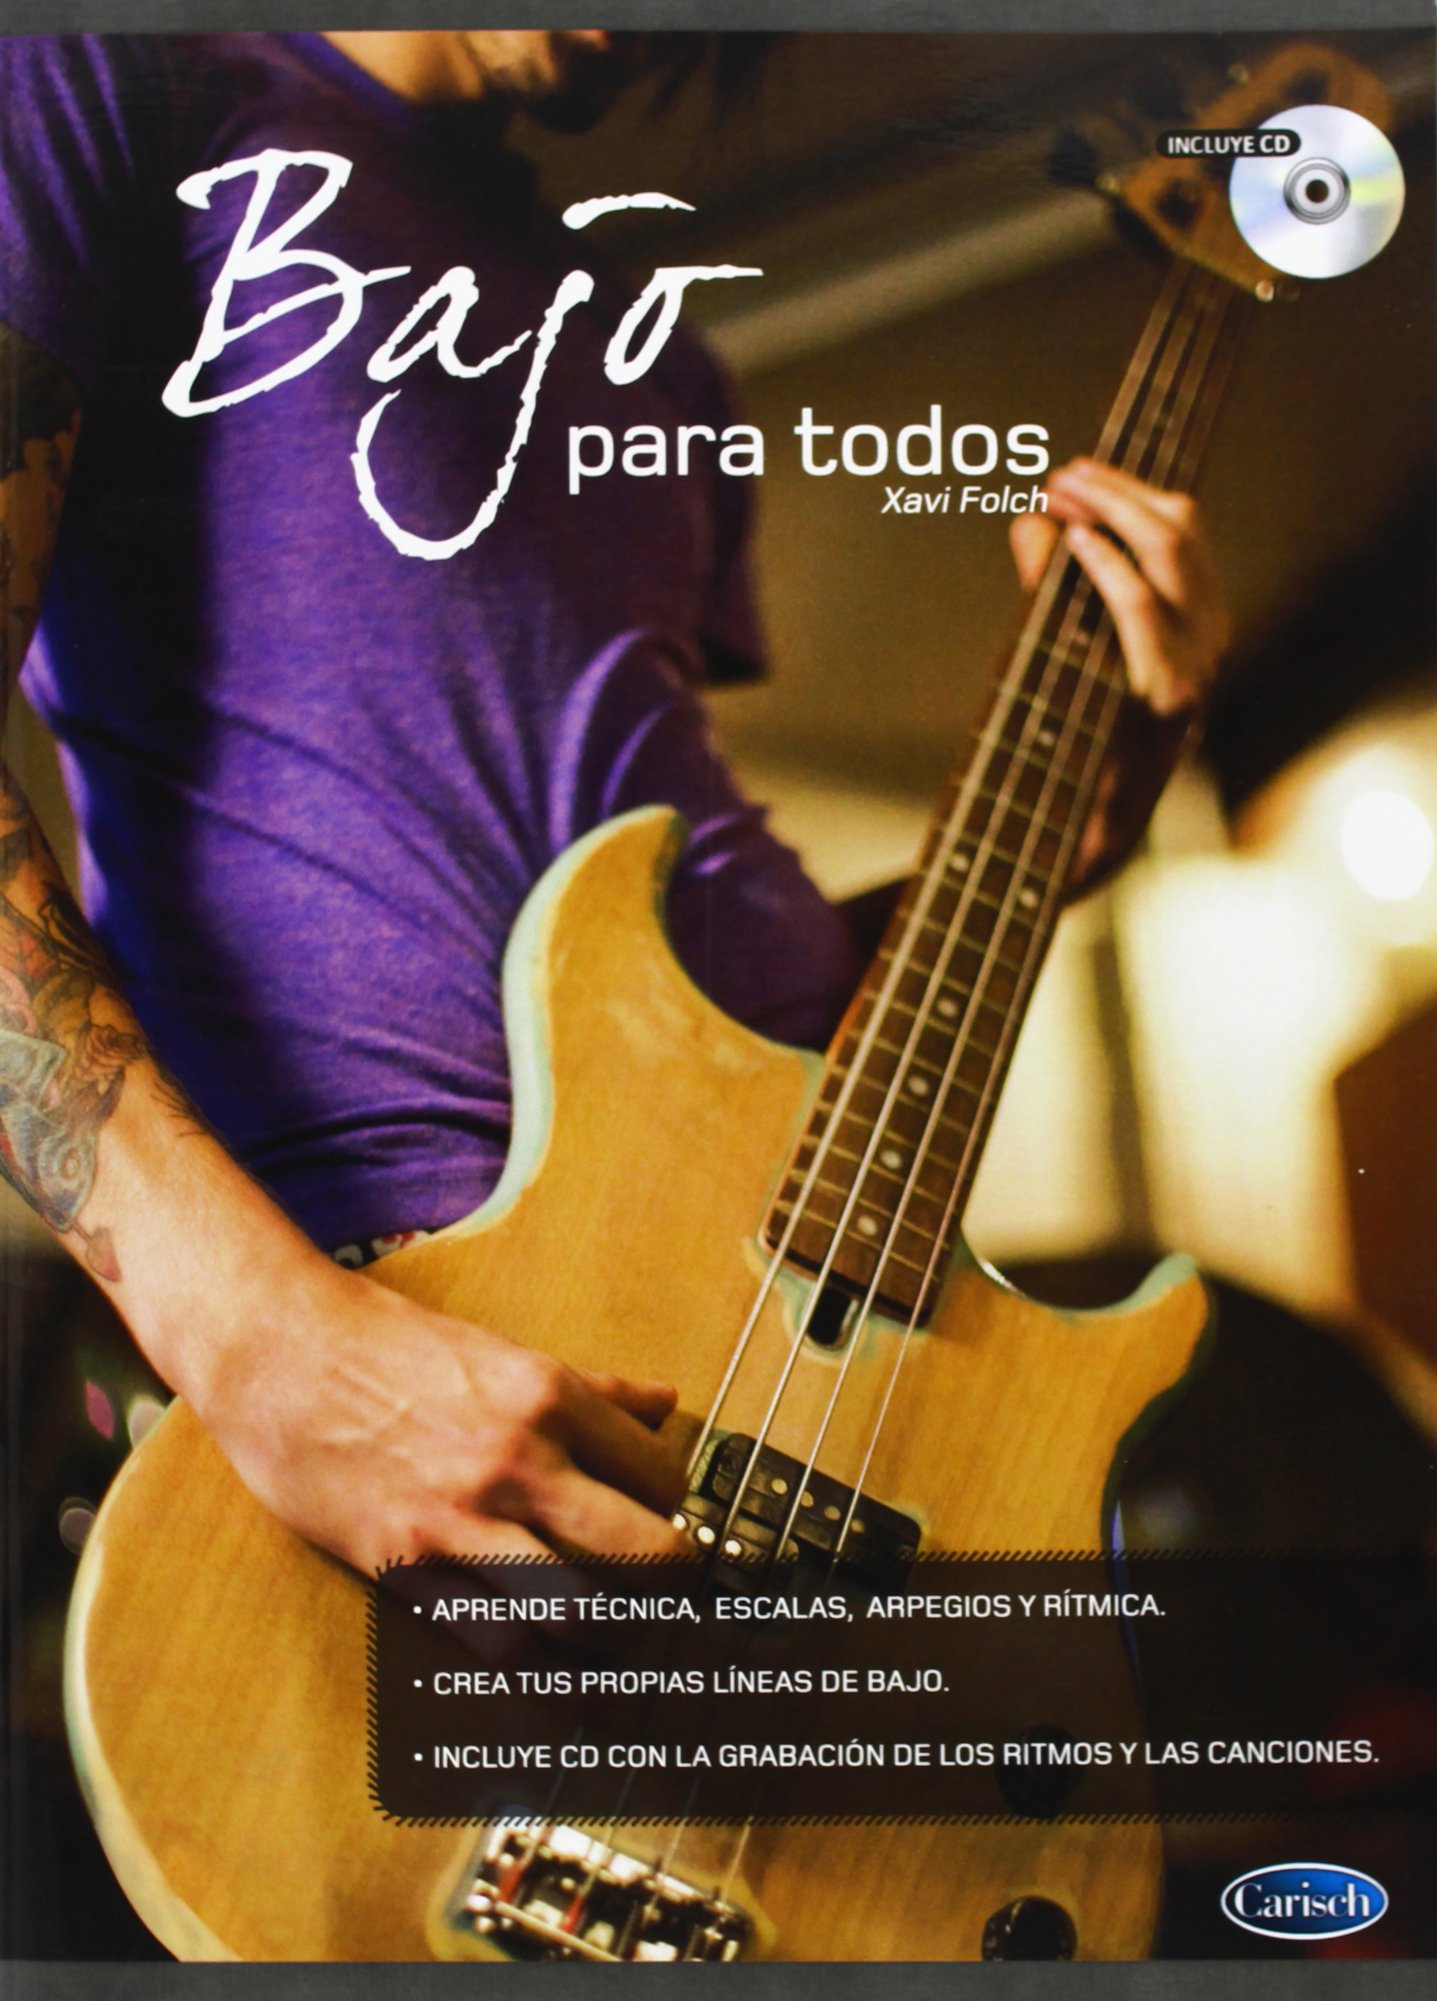 FOLCH X. - Bajo para Todos para Bajo (Inc.CD): FOLCH X.: 9788438710784: Amazon.com: Books